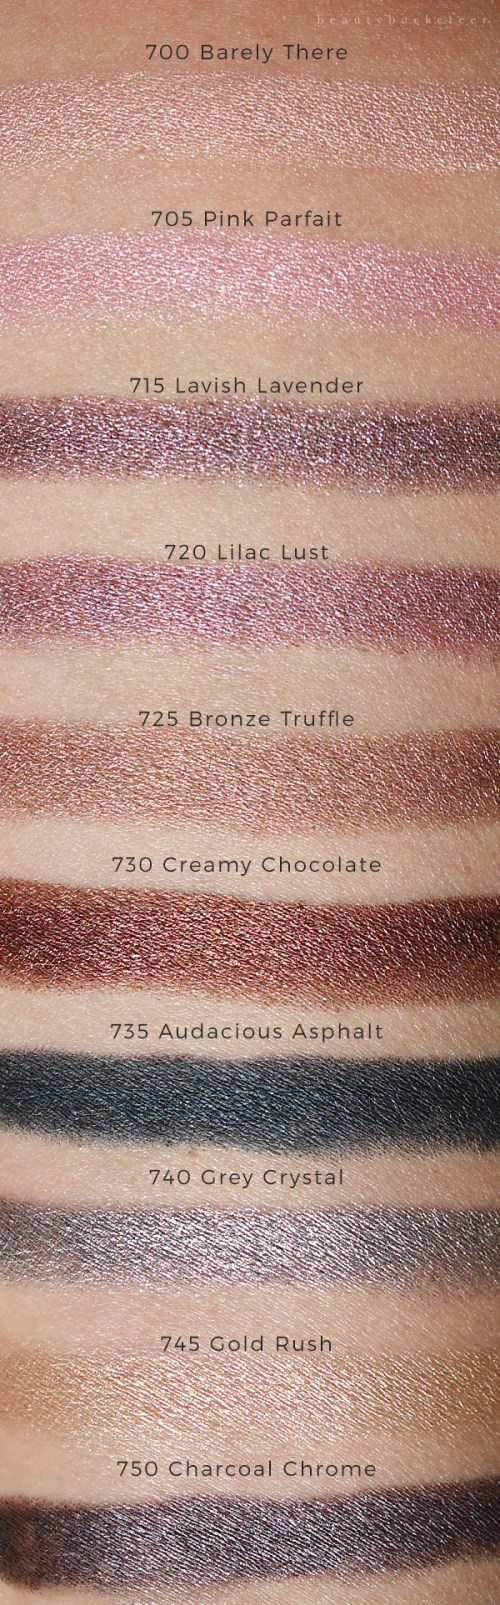 Maybelline Color Tattoo Crayons Swatches For Barely There Pink Parfait Lavish Lavende Maybelline Color Tattoo Maybelline Color Tattoo Crayon Maybelline Color